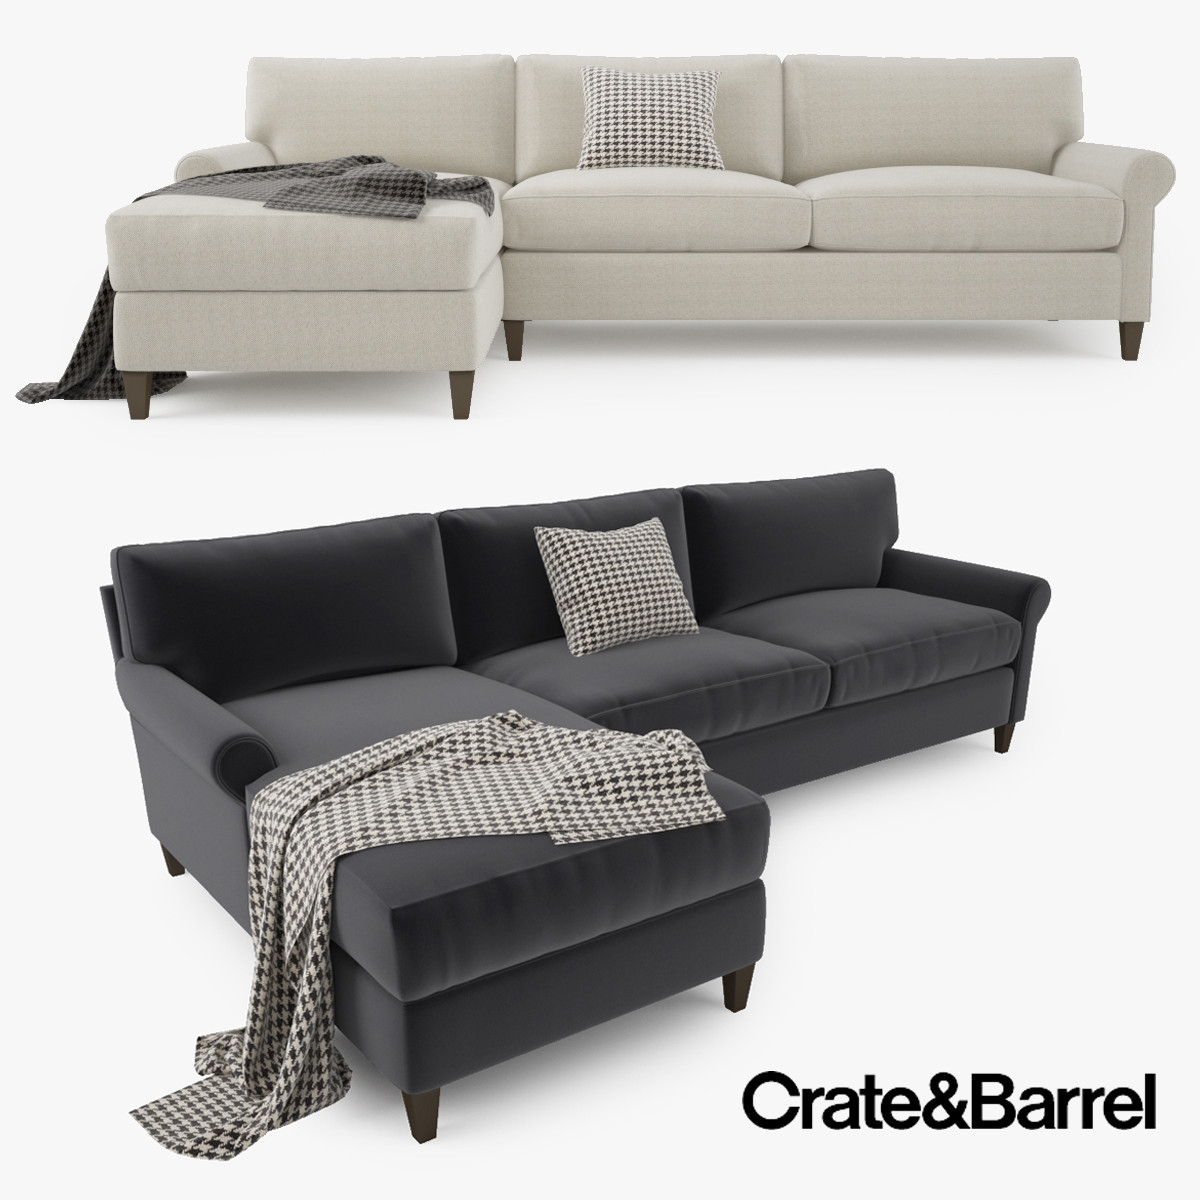 Crate Barrel Montclair 2 Model In Crate And Barrel Sectional Sofas (#6 of 12)